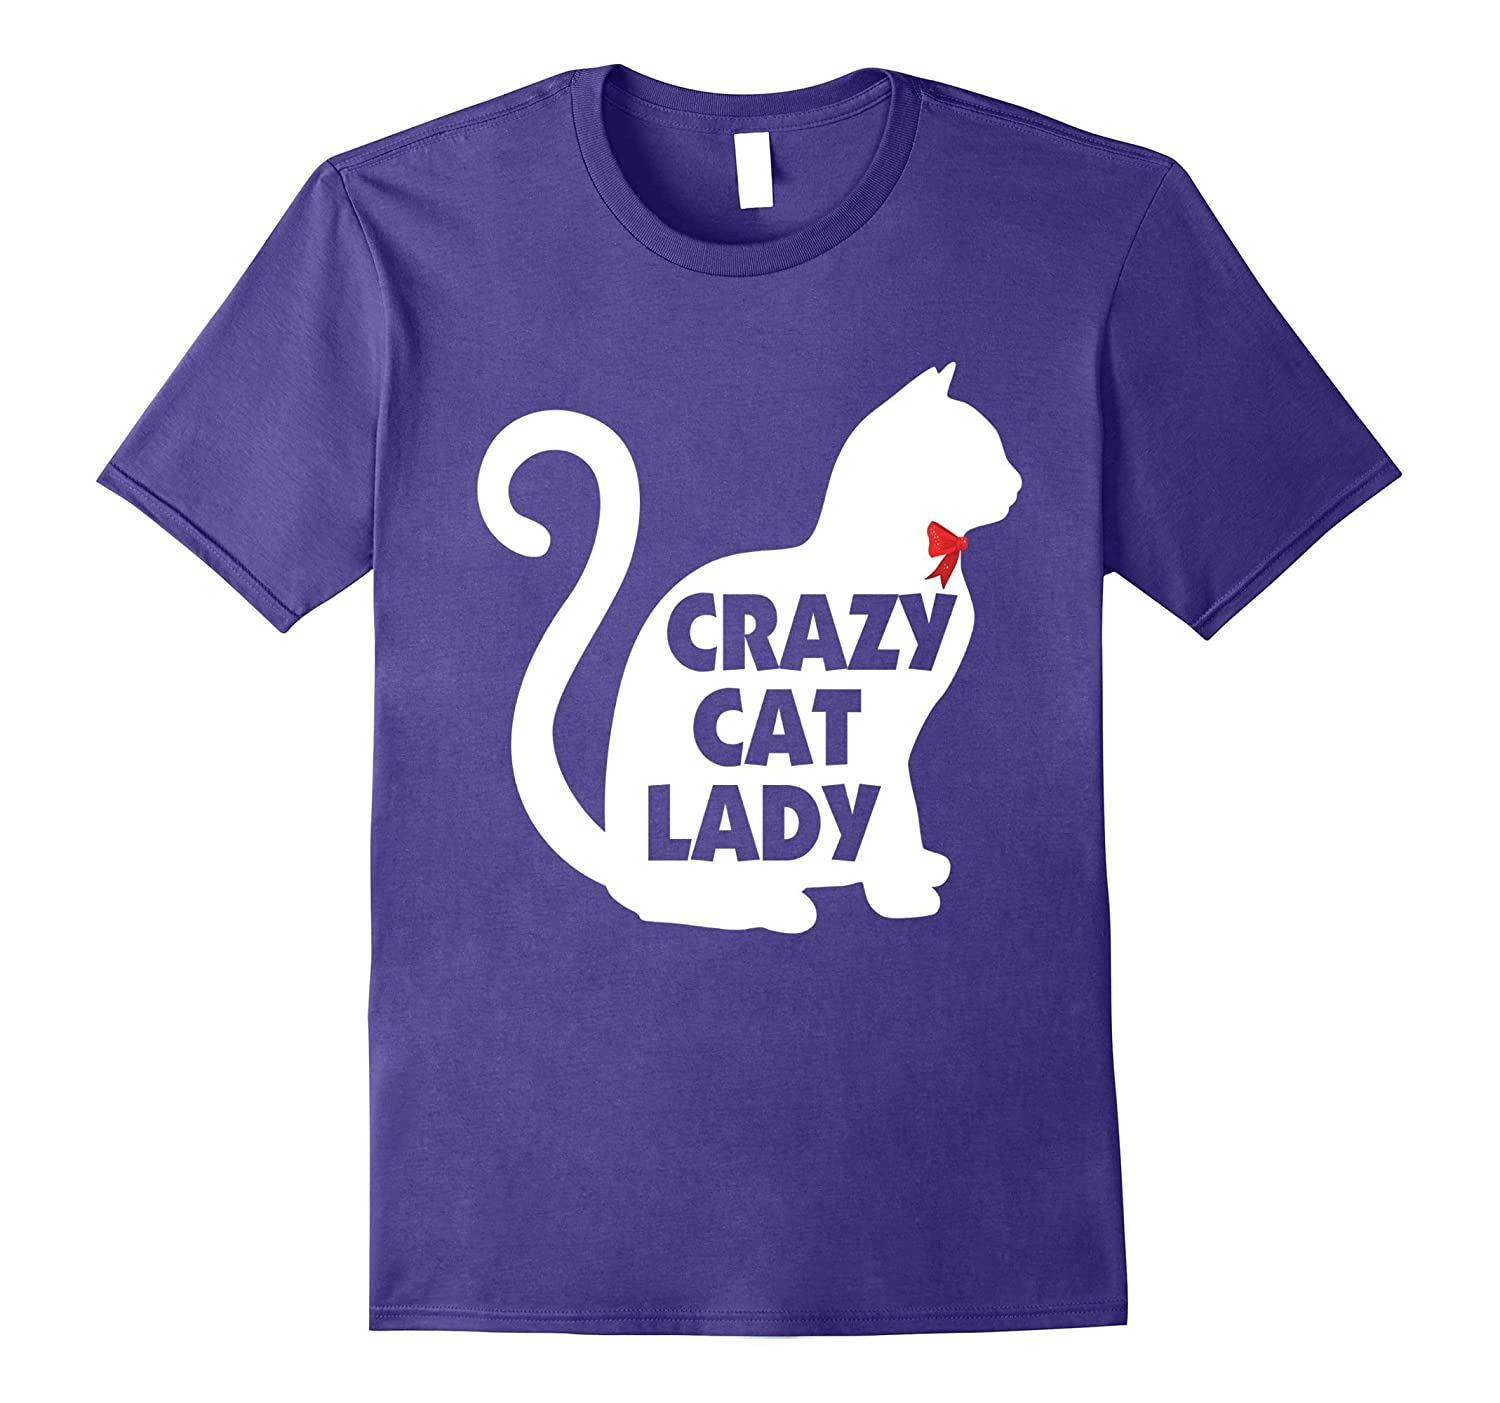 Crazy Cat Lady Cute Funny T-Shirt for Cats  Kittens Lovers-Vaci